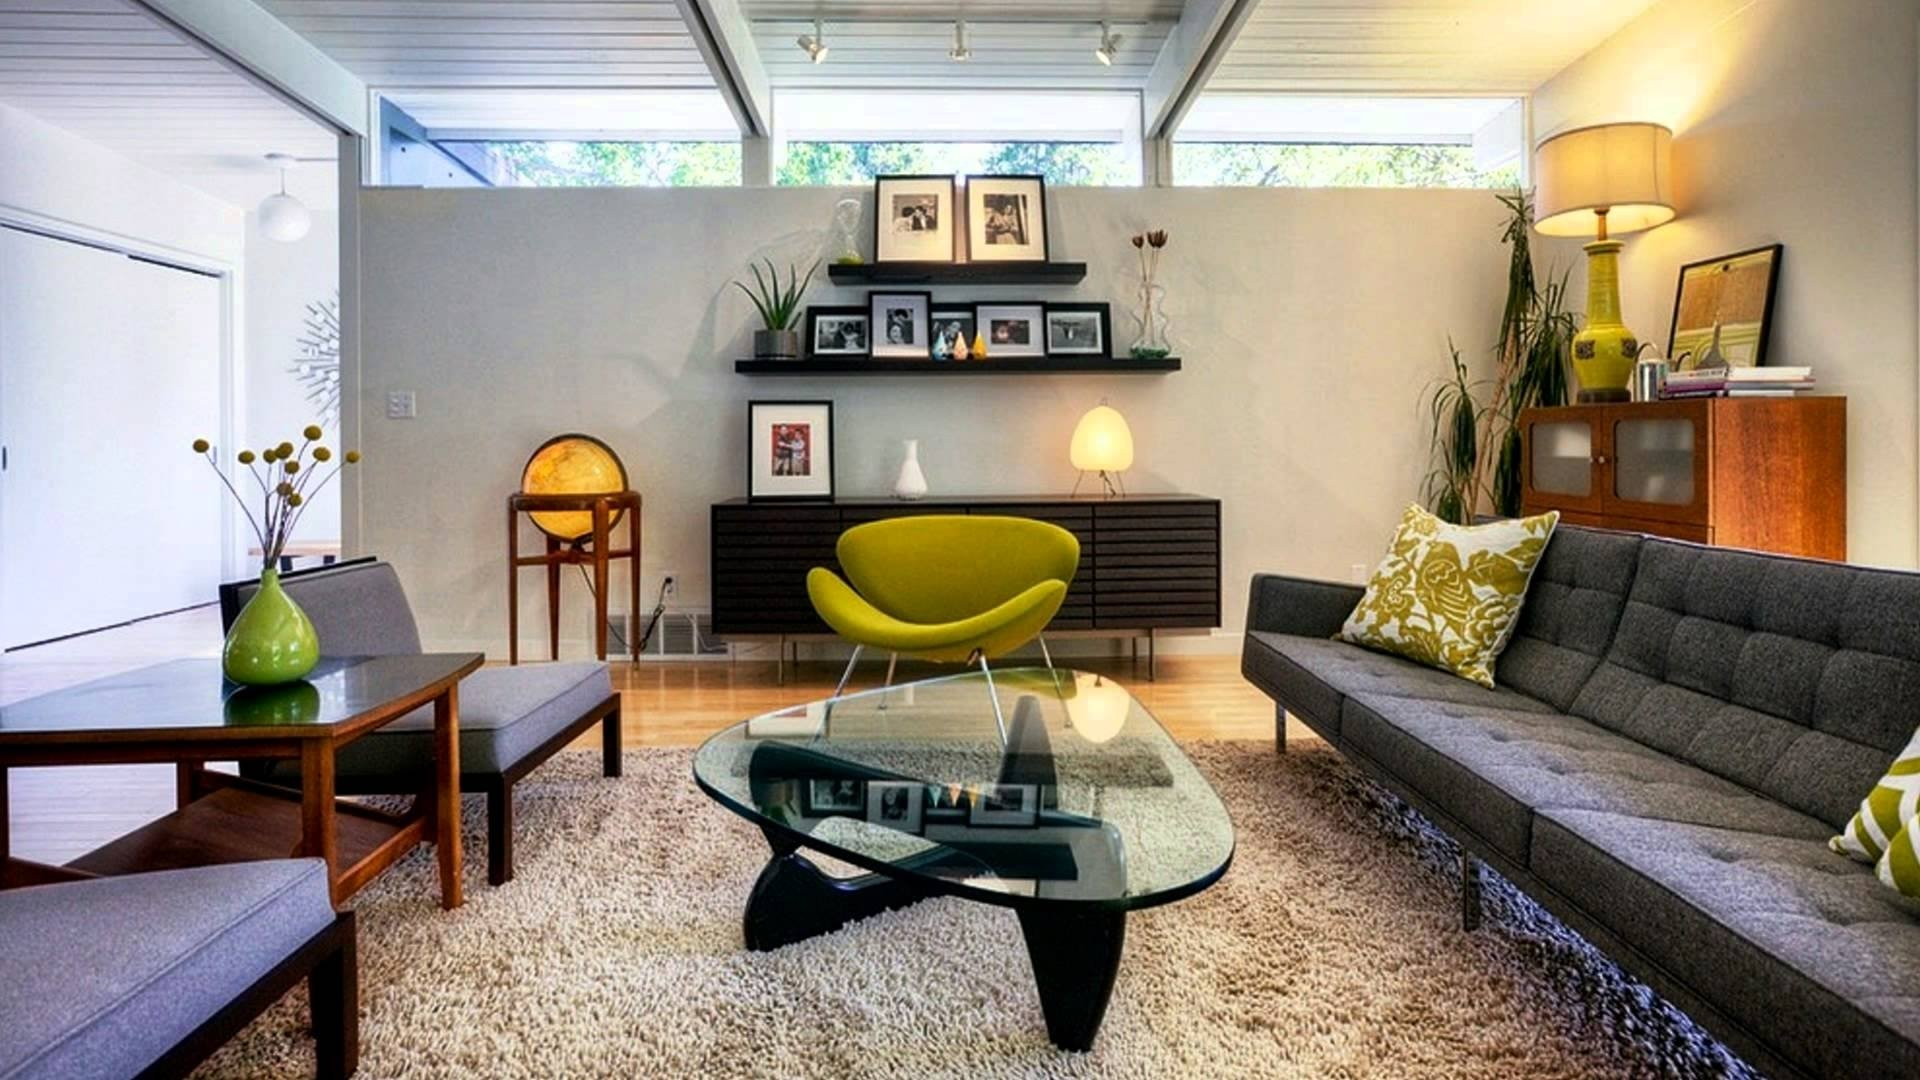 10 Unique Mid Century Modern Decorating Ideas giant night lamps in bedroom mid century modern living room ideas 2020